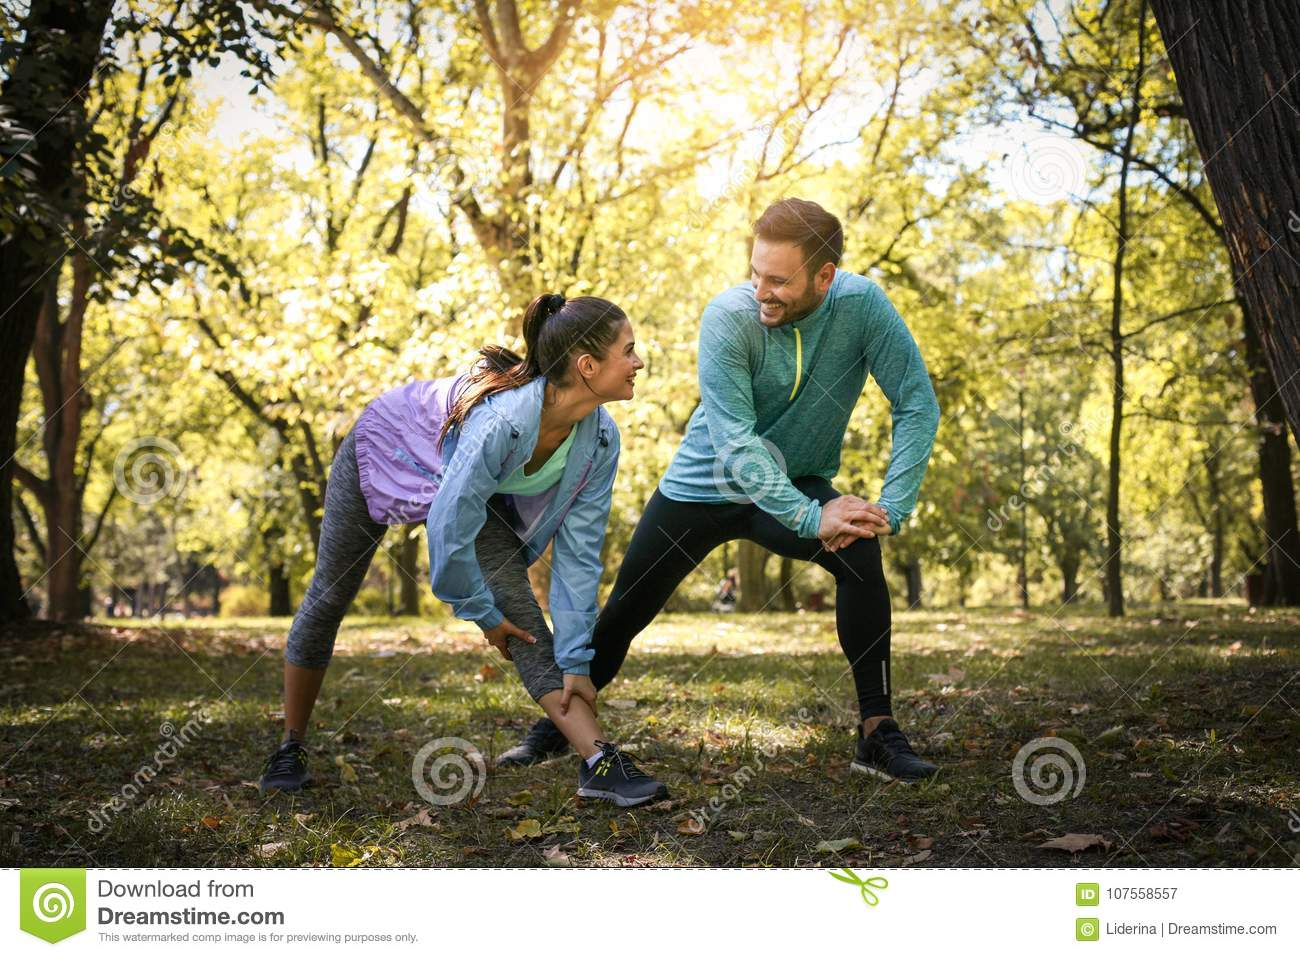 Couple stretching in park. Young couple working exercise togethe